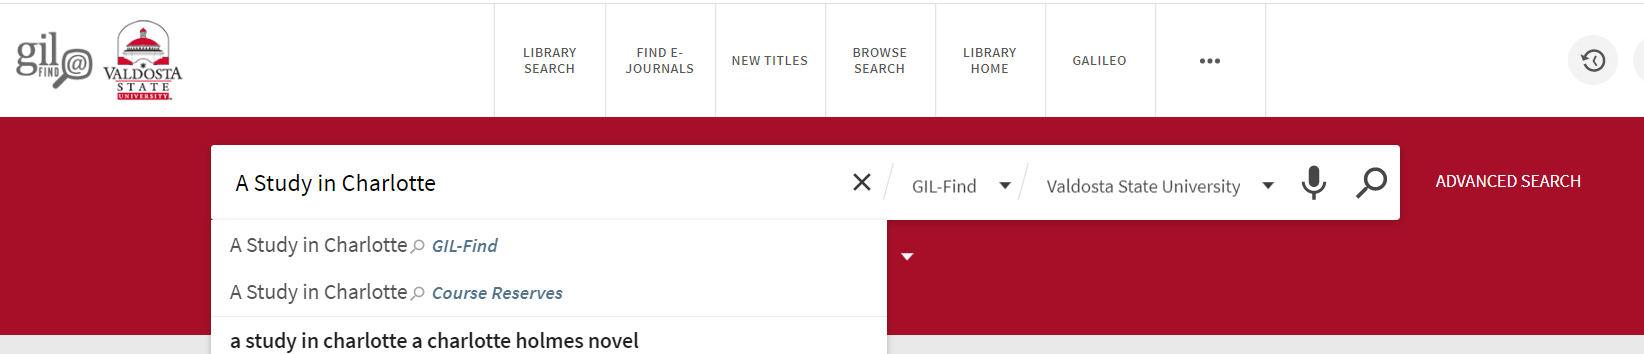 Search for A Study in Charlotte in library catalog simple search